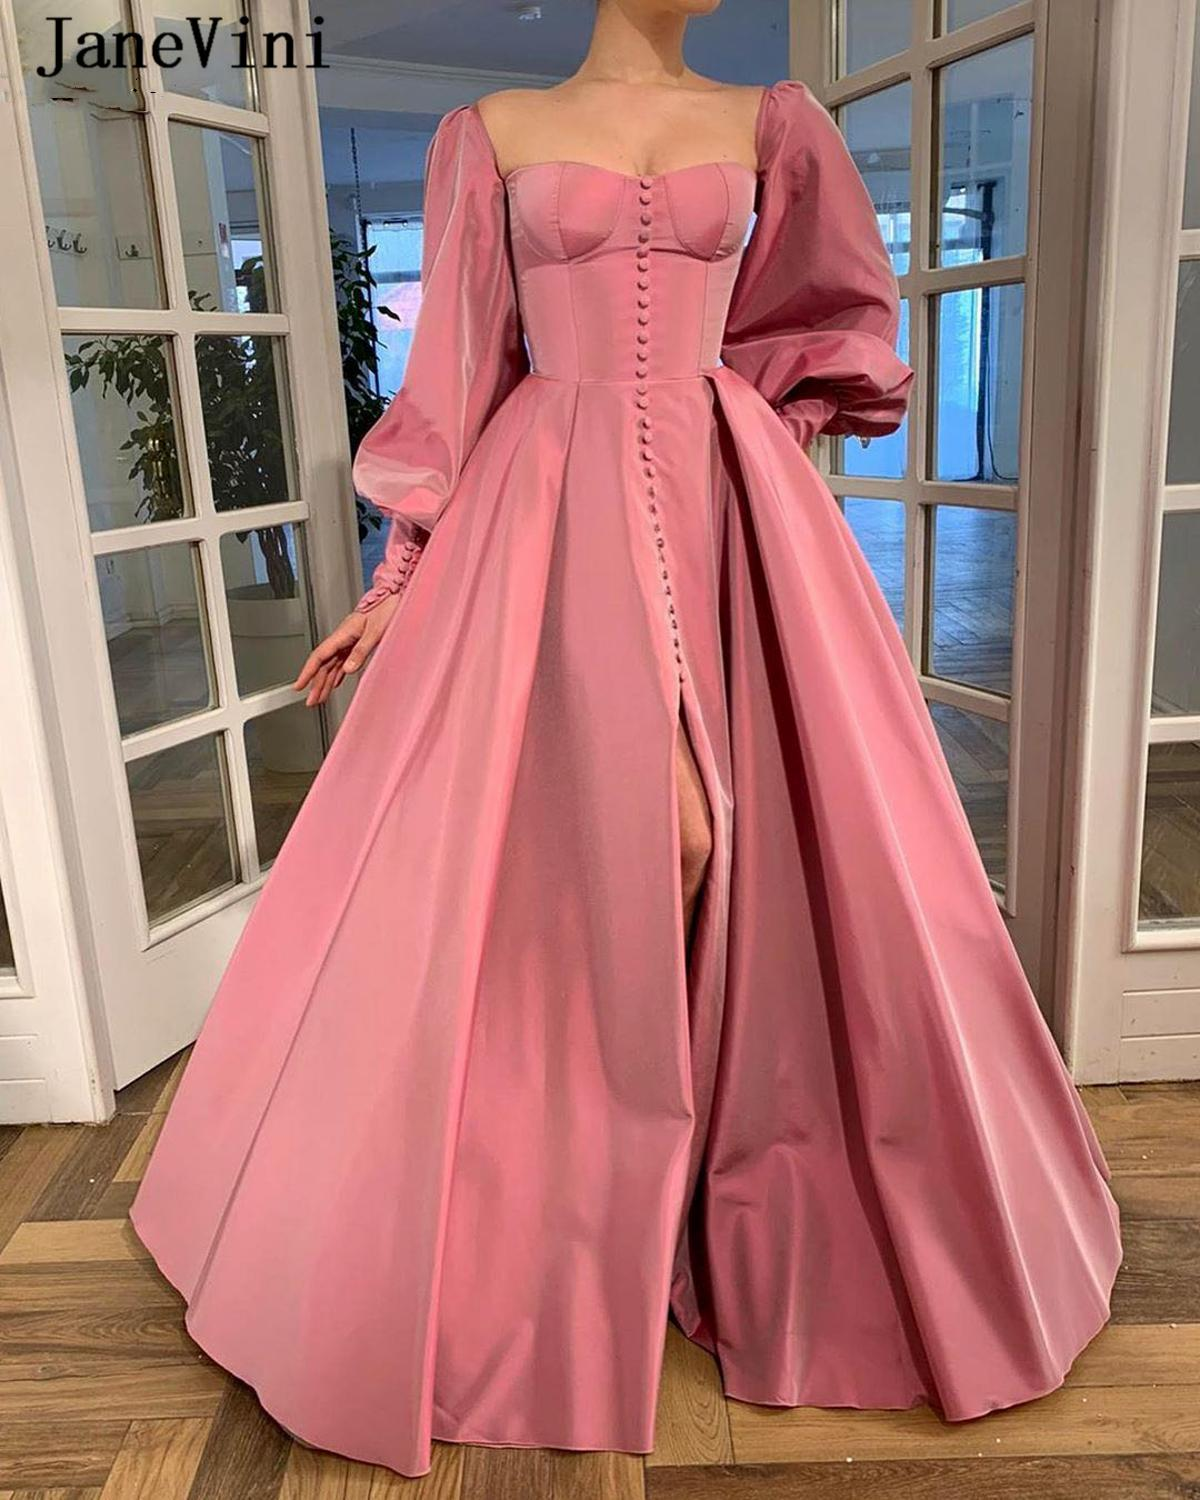 JaneVini 2020 Elegant Muslim Long Evening Dresses with Puffy Sleeves A Line Satin Floor Length Dubai Strapless Women Party Gowns